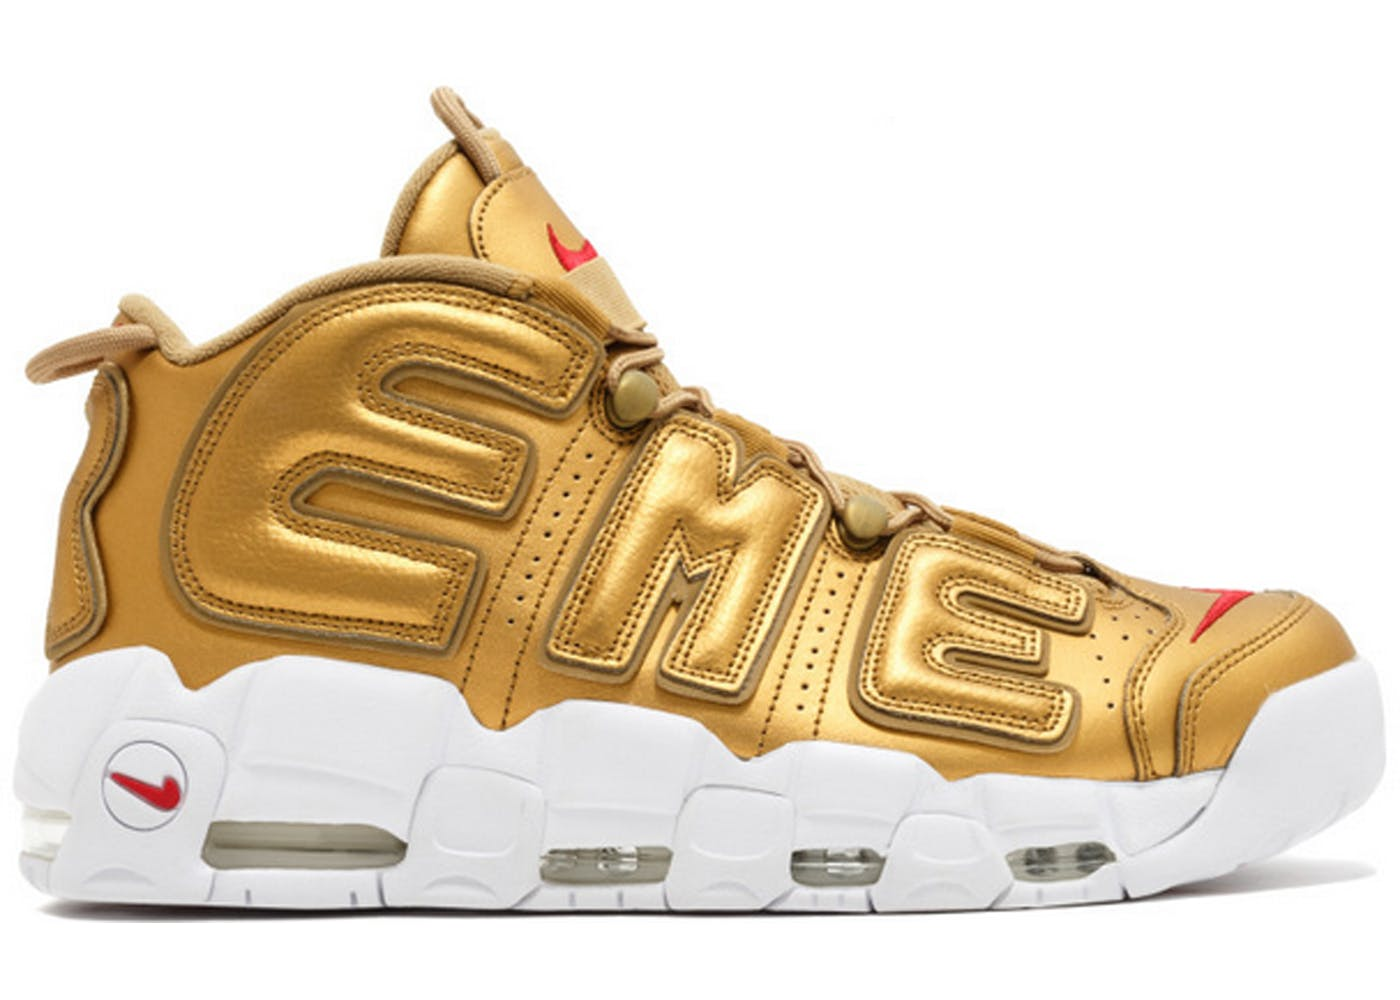 Nike Uptempo Images